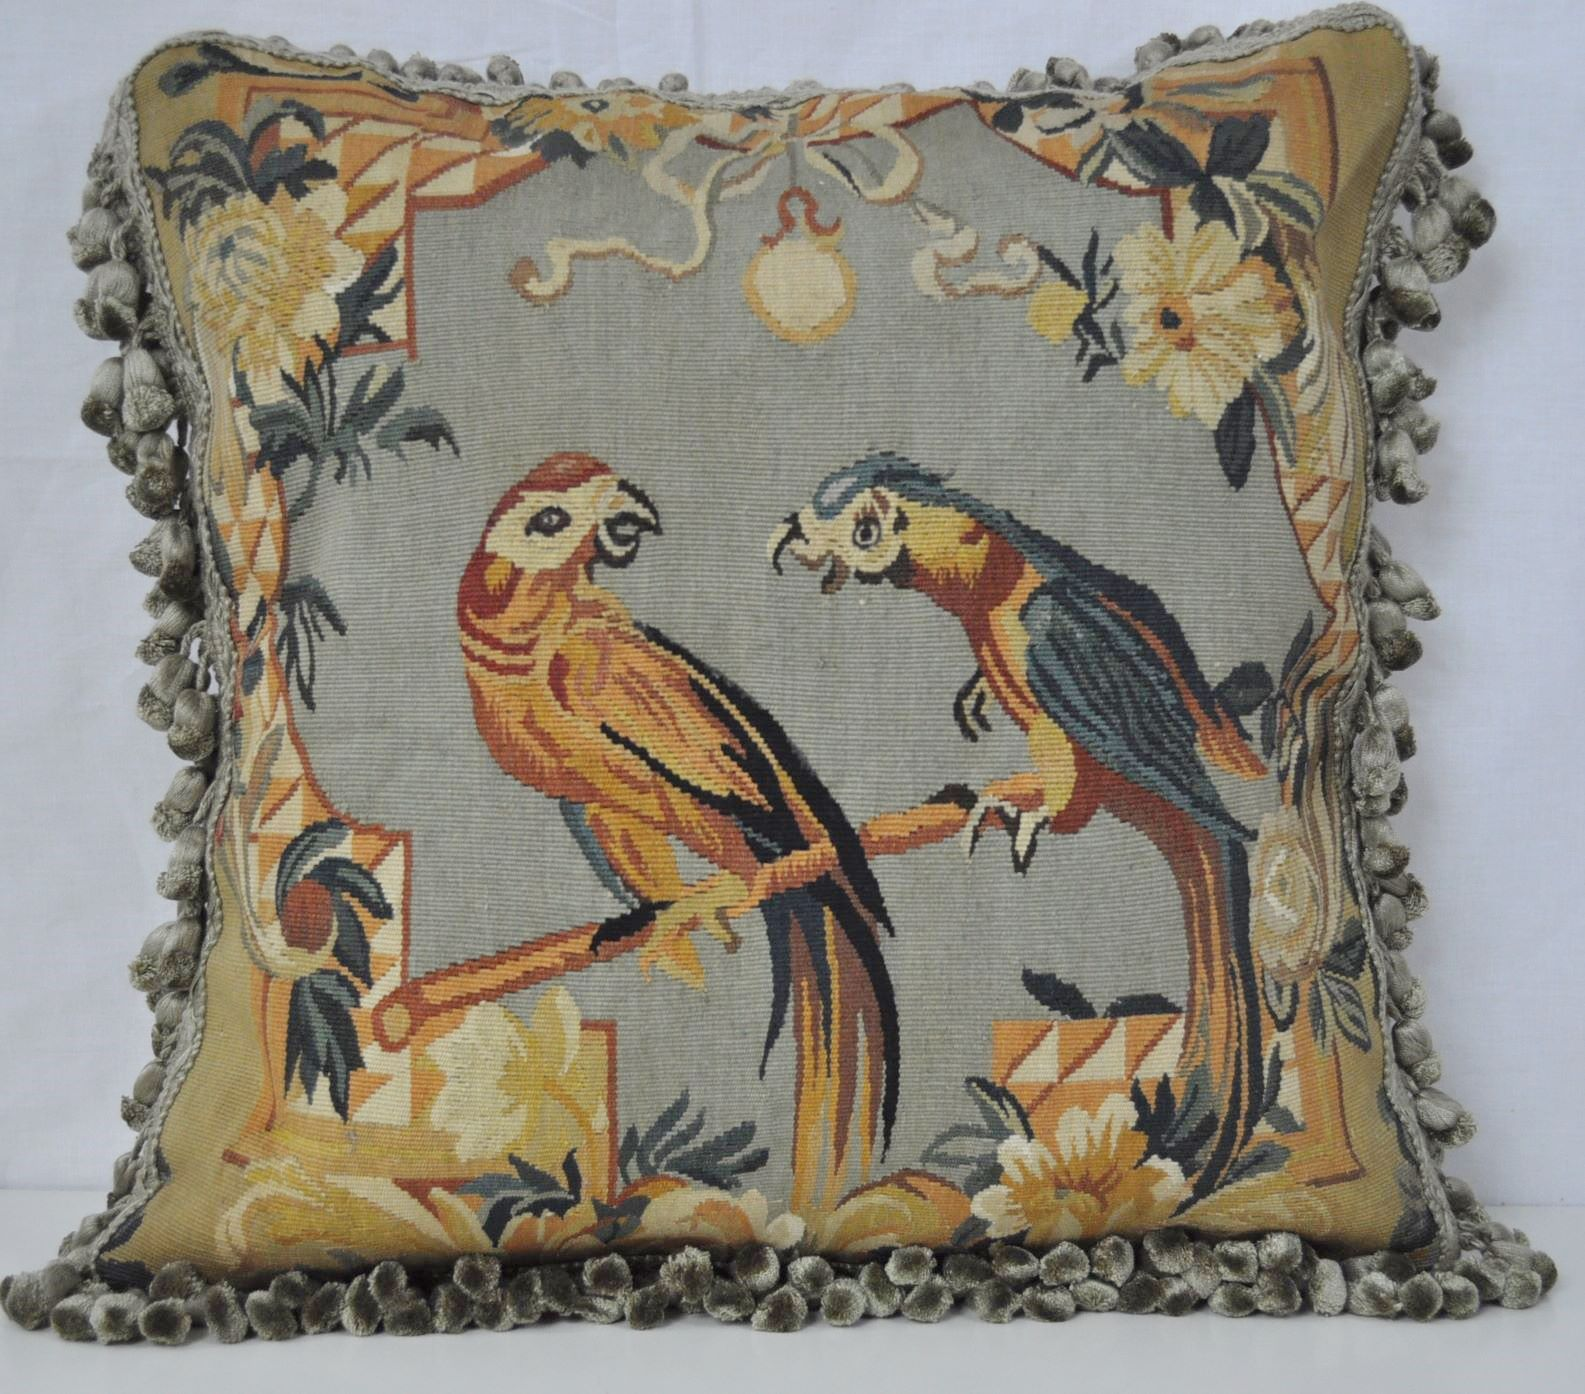 20″ x 20″ Handmade Pair of Parrots French Gobelins Tapestry Weave Wool Aubusson Cushion Cover/Pillow Case